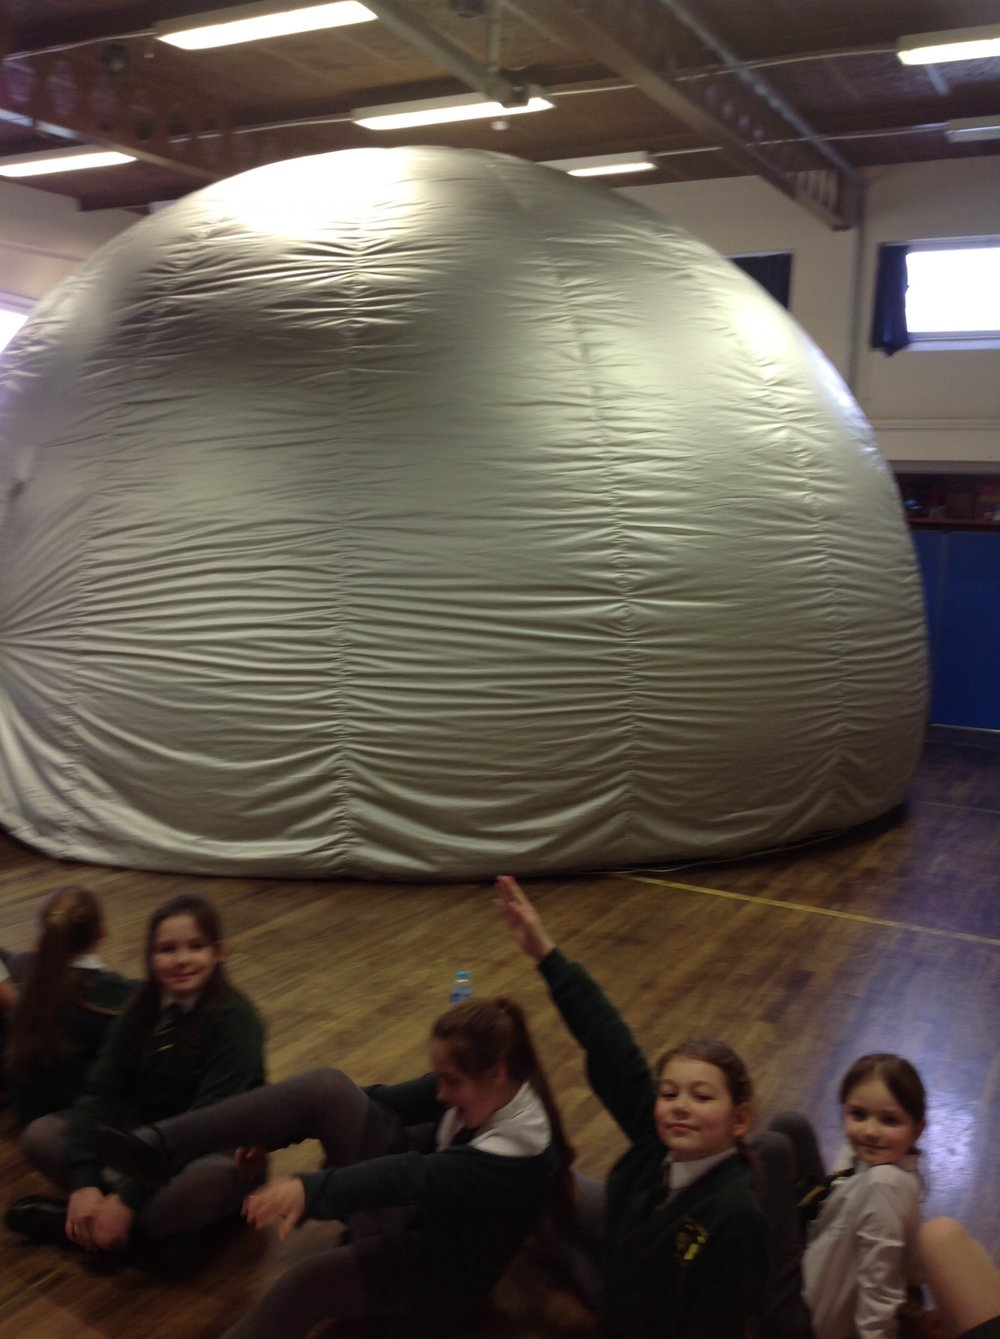 We loved the Space Dome Planetarium - we were so excited waiting to investigate inside.